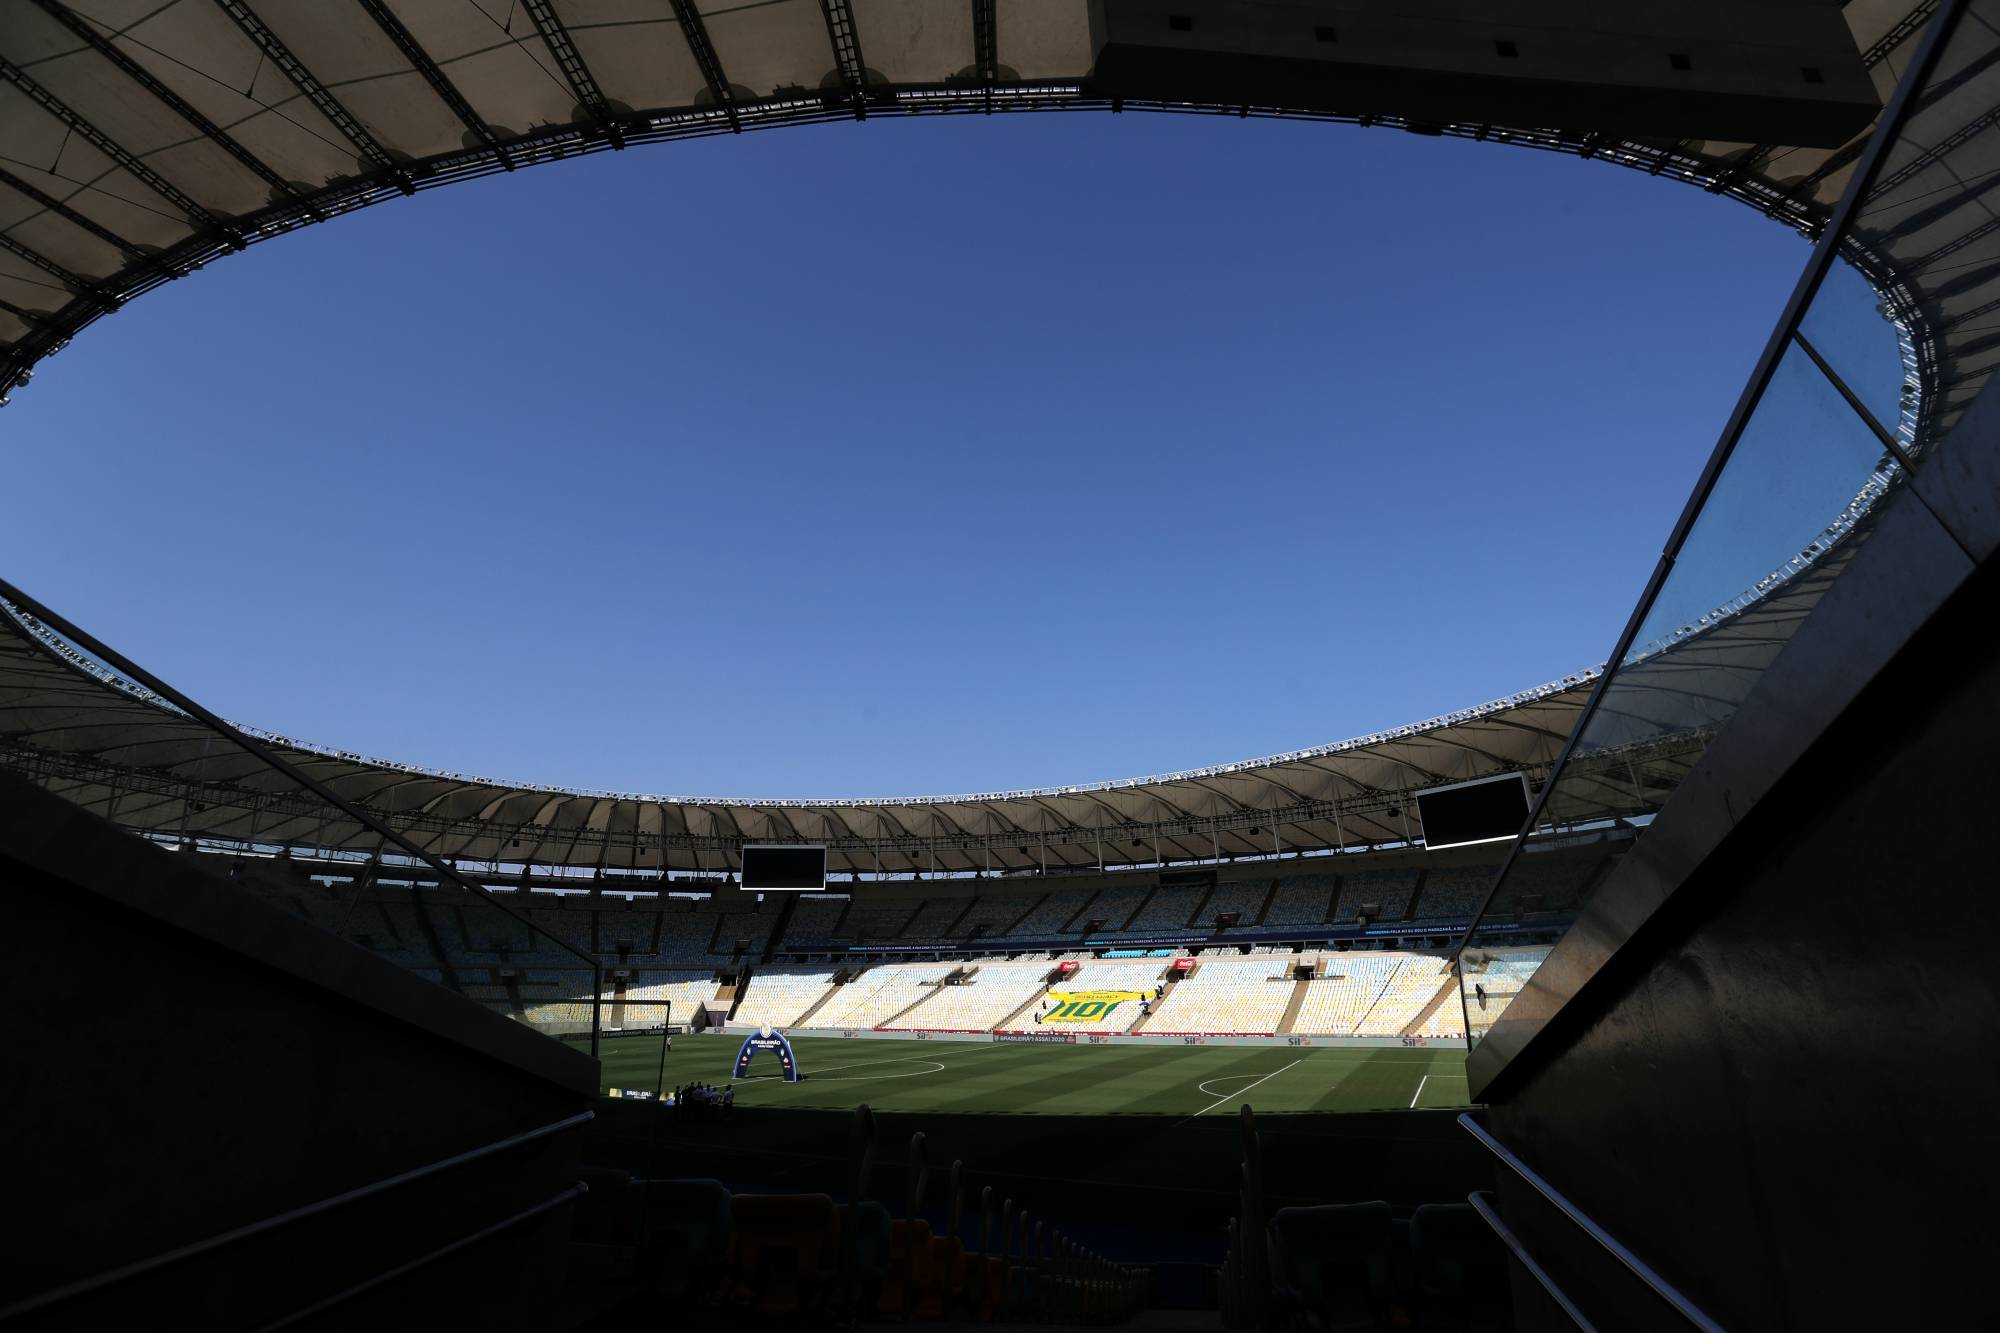 Rio de Janeiro legendary Maracana is scheduled to host games at the Copa America after the South American soccer tournament was relocated from Argentina. | REUTERS